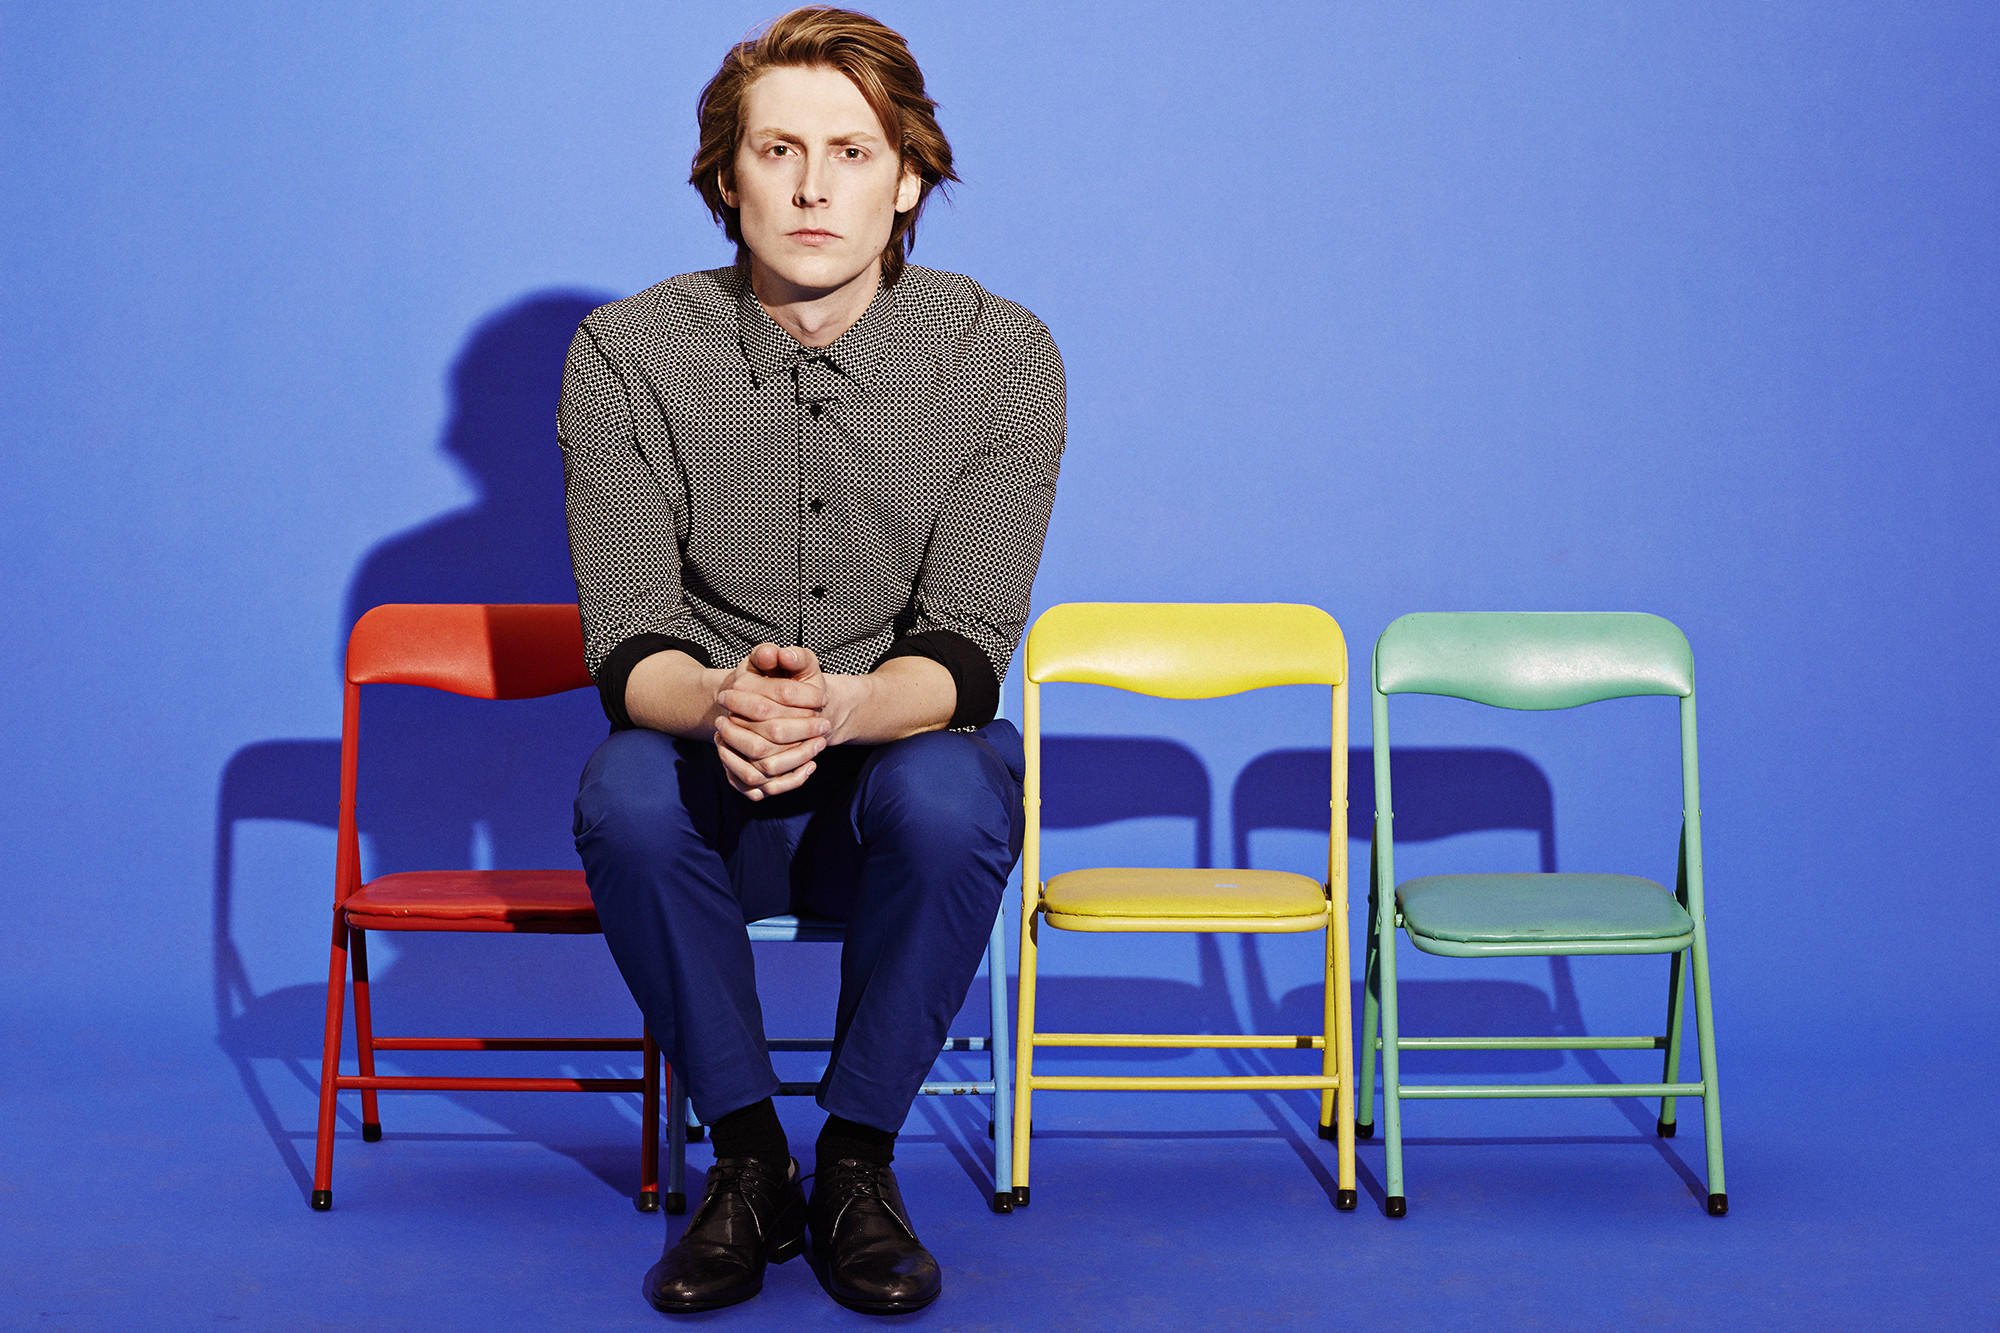 Singer/songwriter Eric Hutchinson will perform at this year's Silopanna Music Festival.